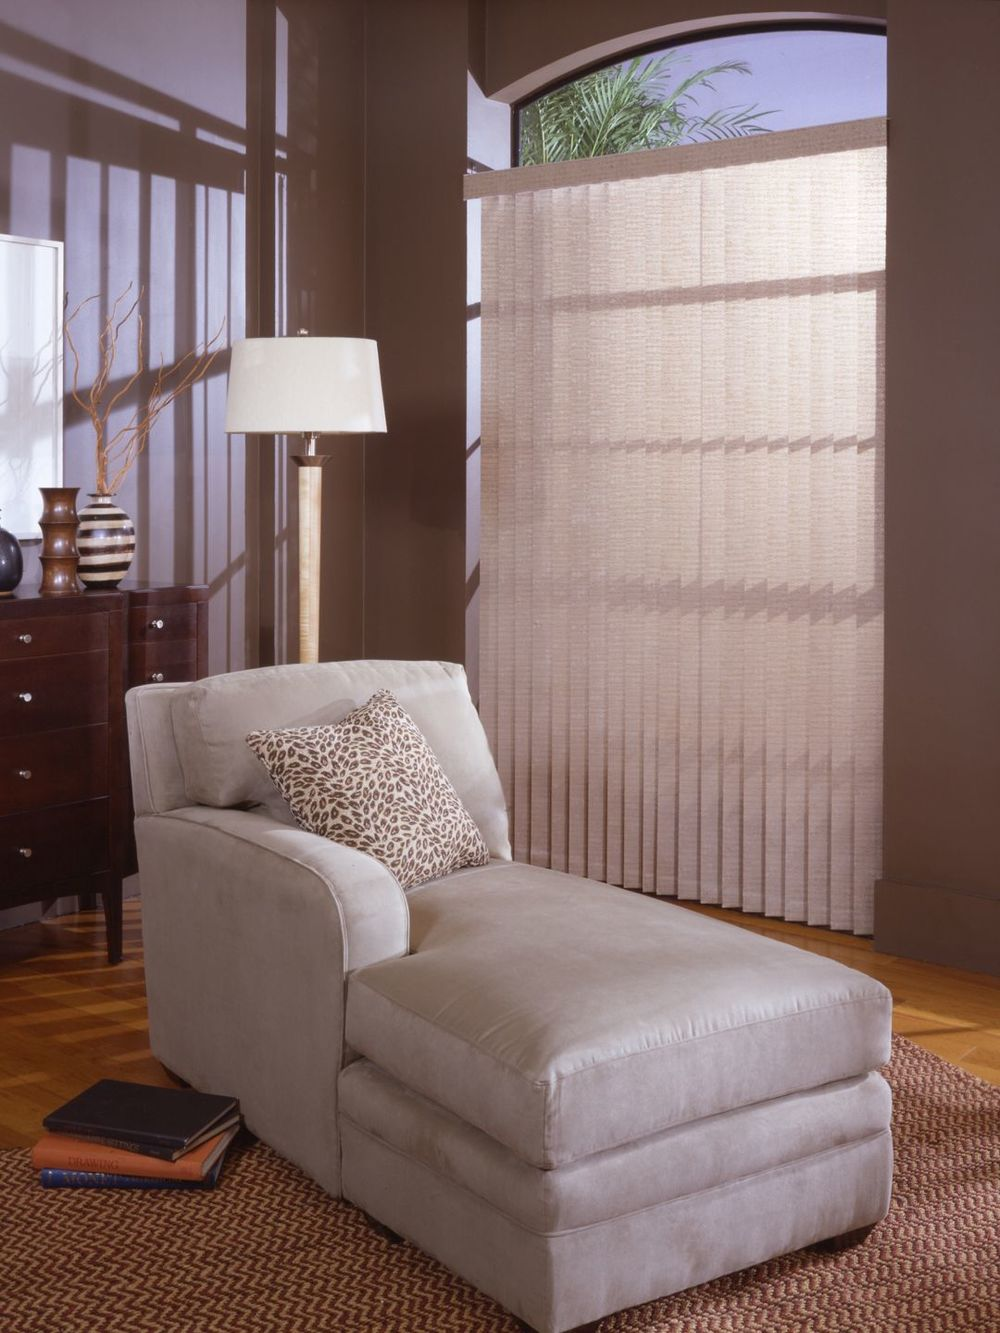 A focused look at this home's comfy chair on top of a brown area rug covering the hardwood flooring. The window is covered by a vertical window blinds as well.